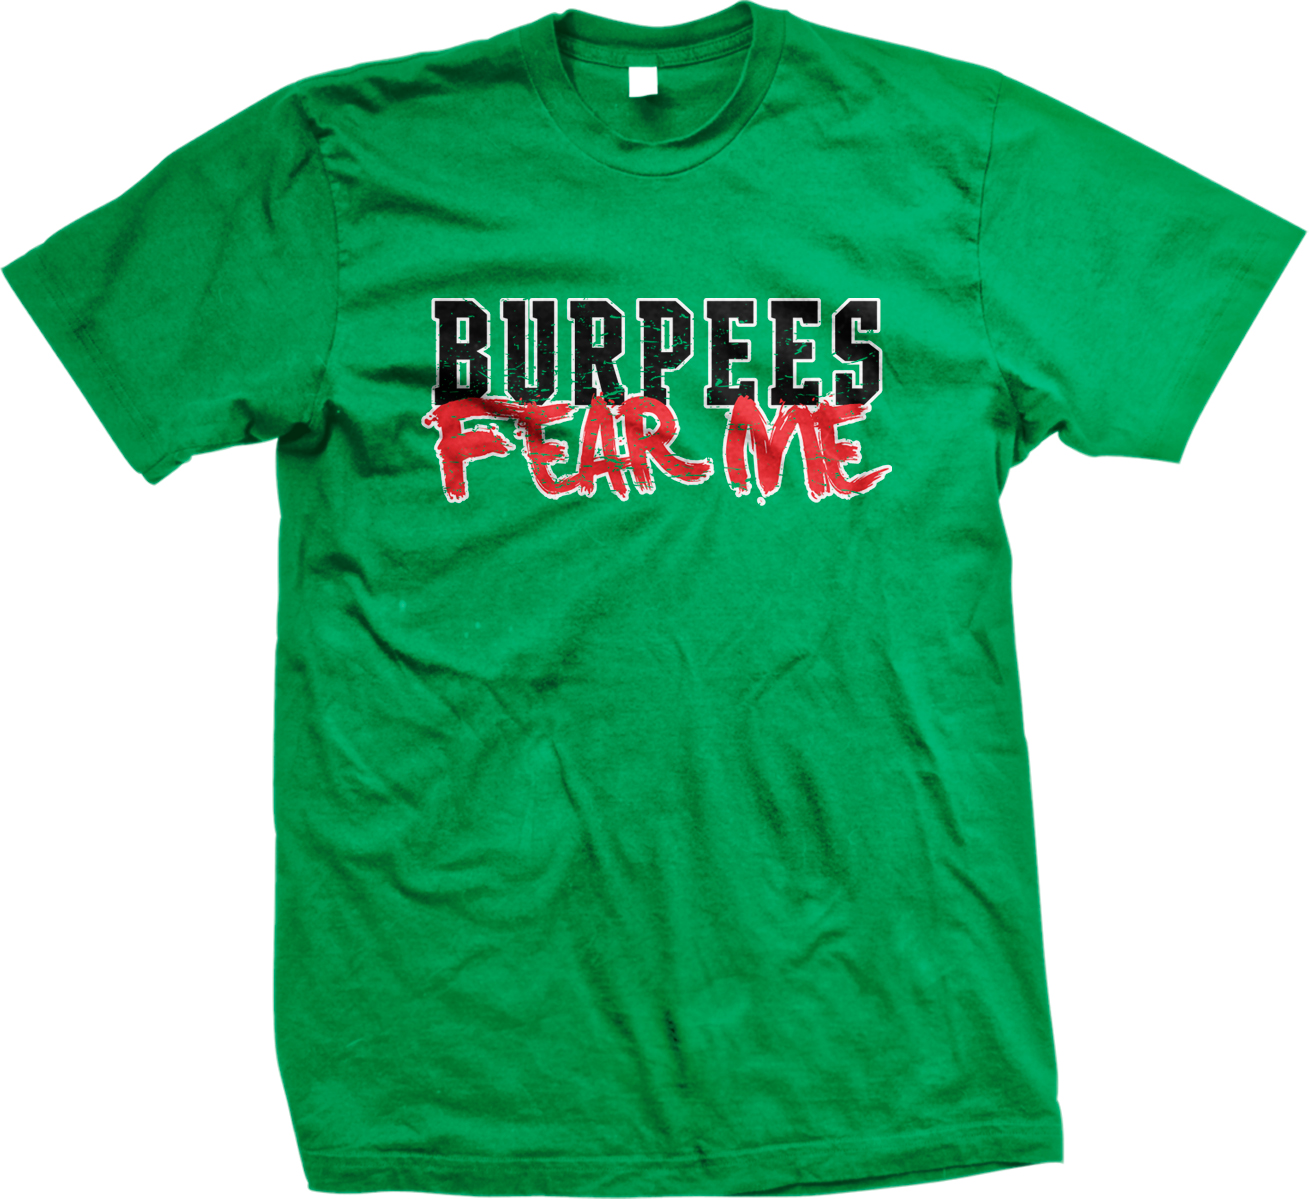 Burpees Fear Me Workout Gym Lifting Training Exercise Mens